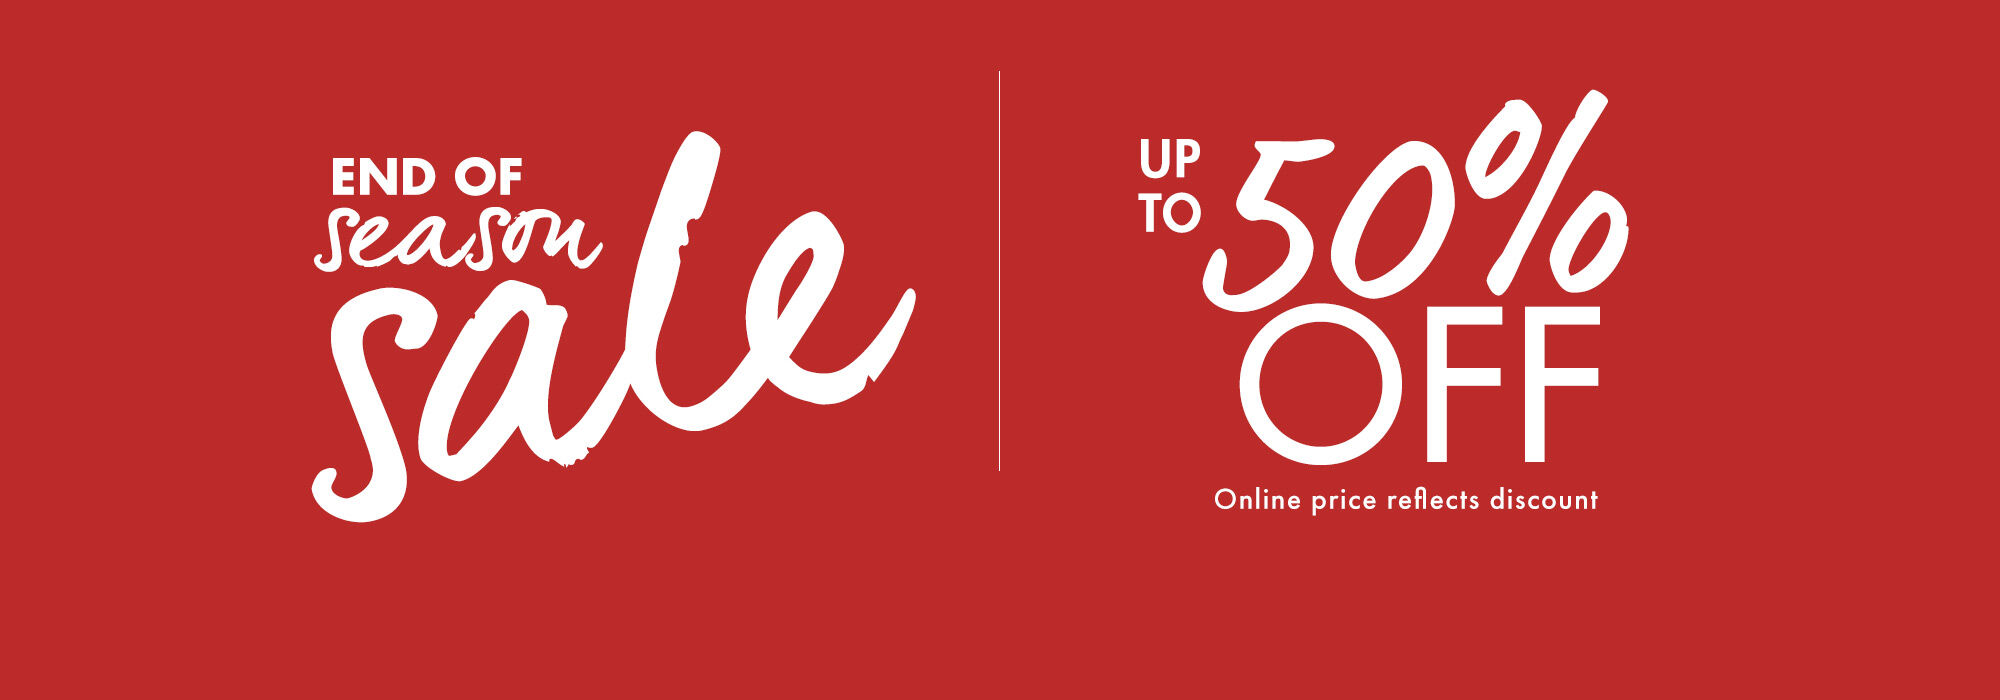 End of season sale. Up To 50% Off. Online price reflects discount.